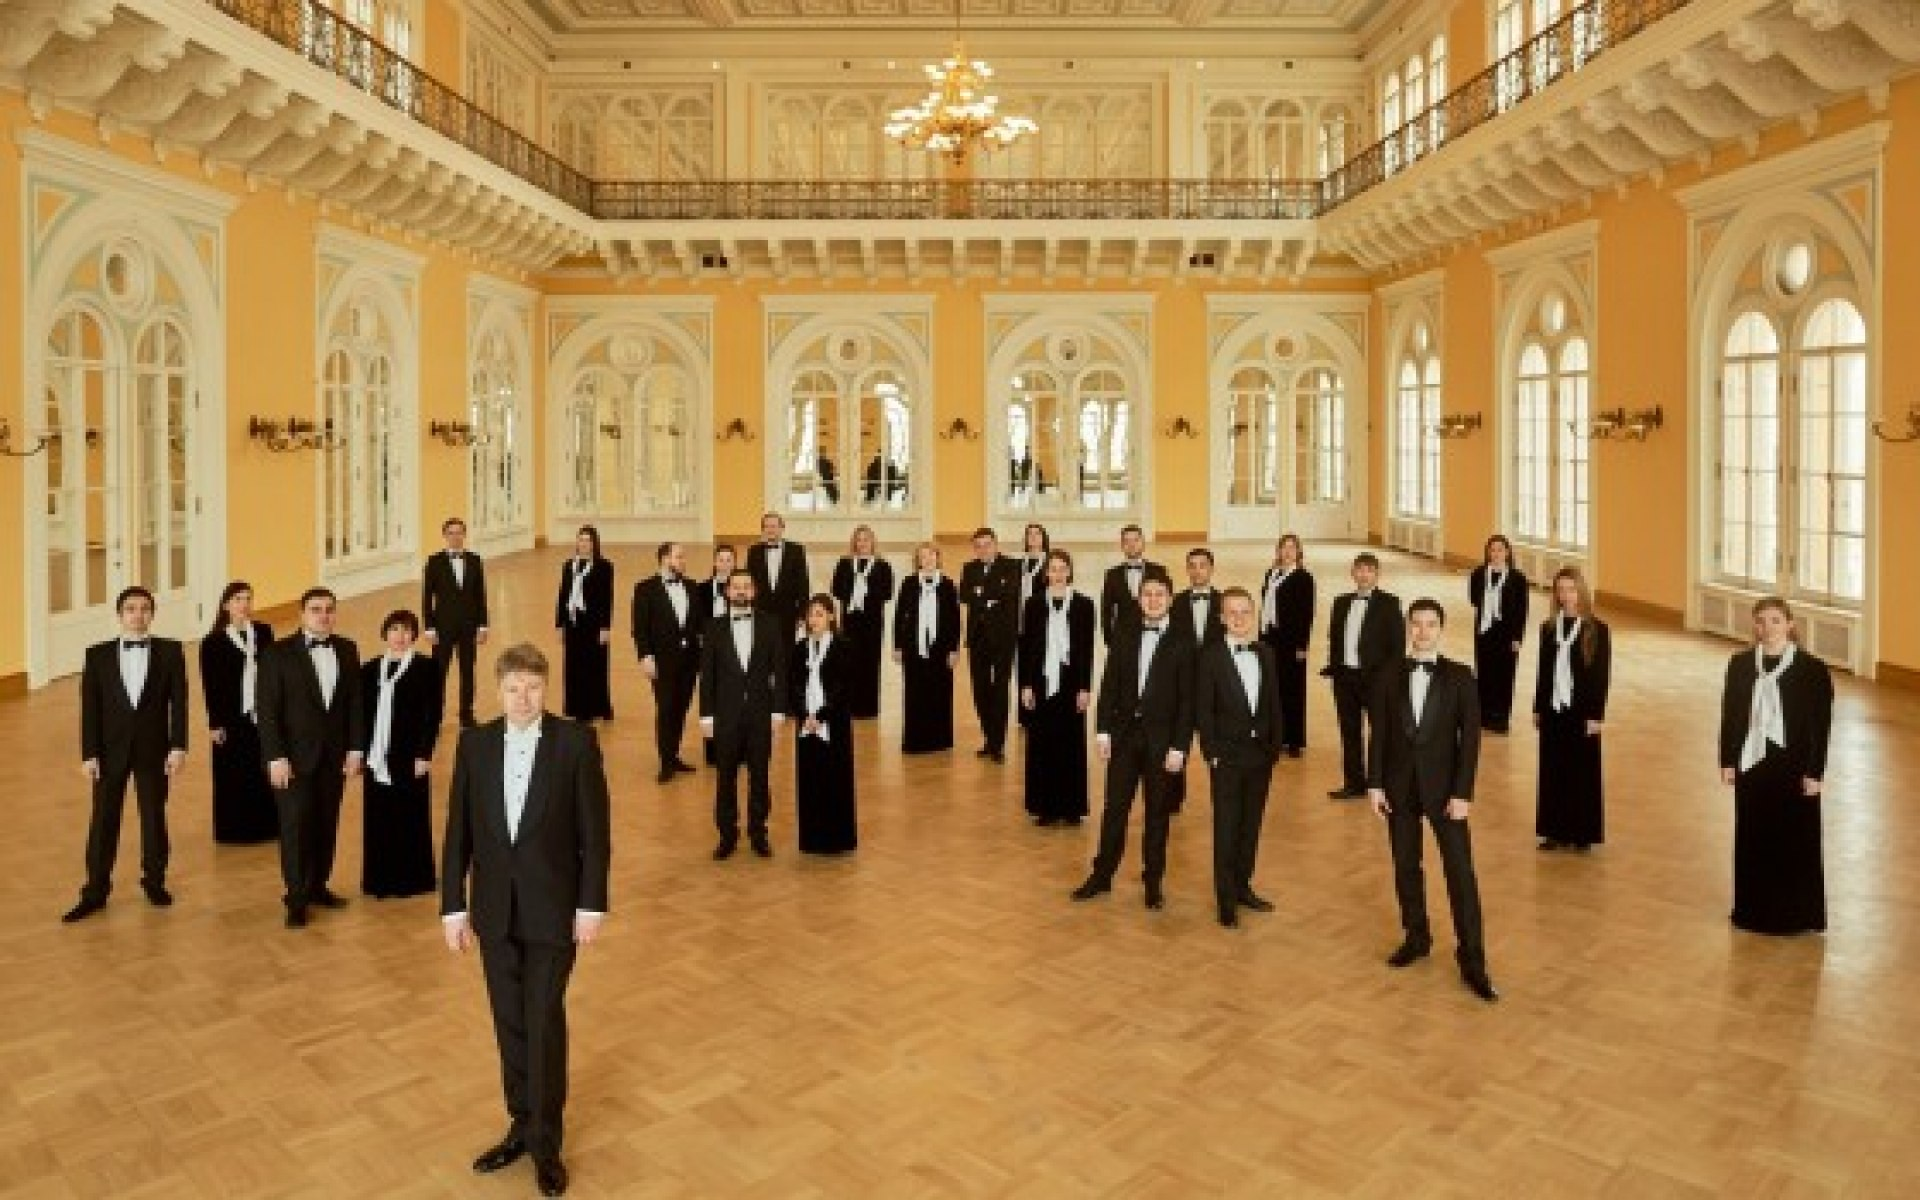 Daniel Zaretsky and the Saint Petersburg Concert Choir